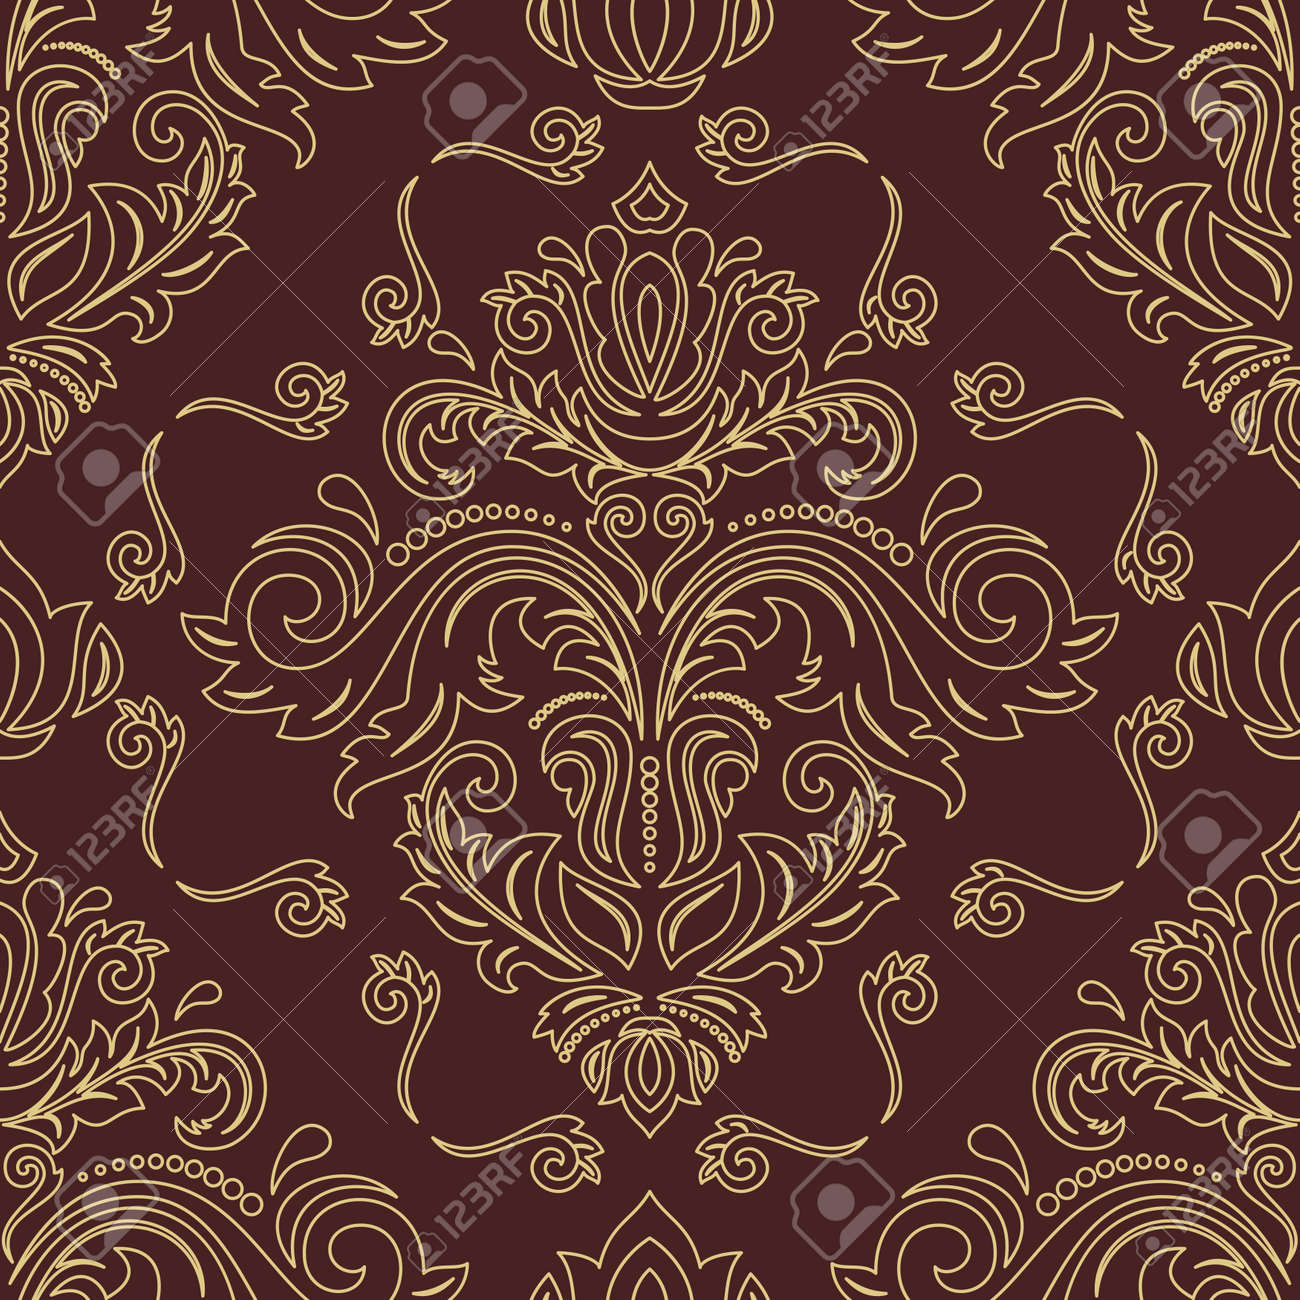 Orient classic pattern. Seamless abstract background with vintage elements. Orient brown and golden background. Ornament for wallpaper and packaging - 169559489